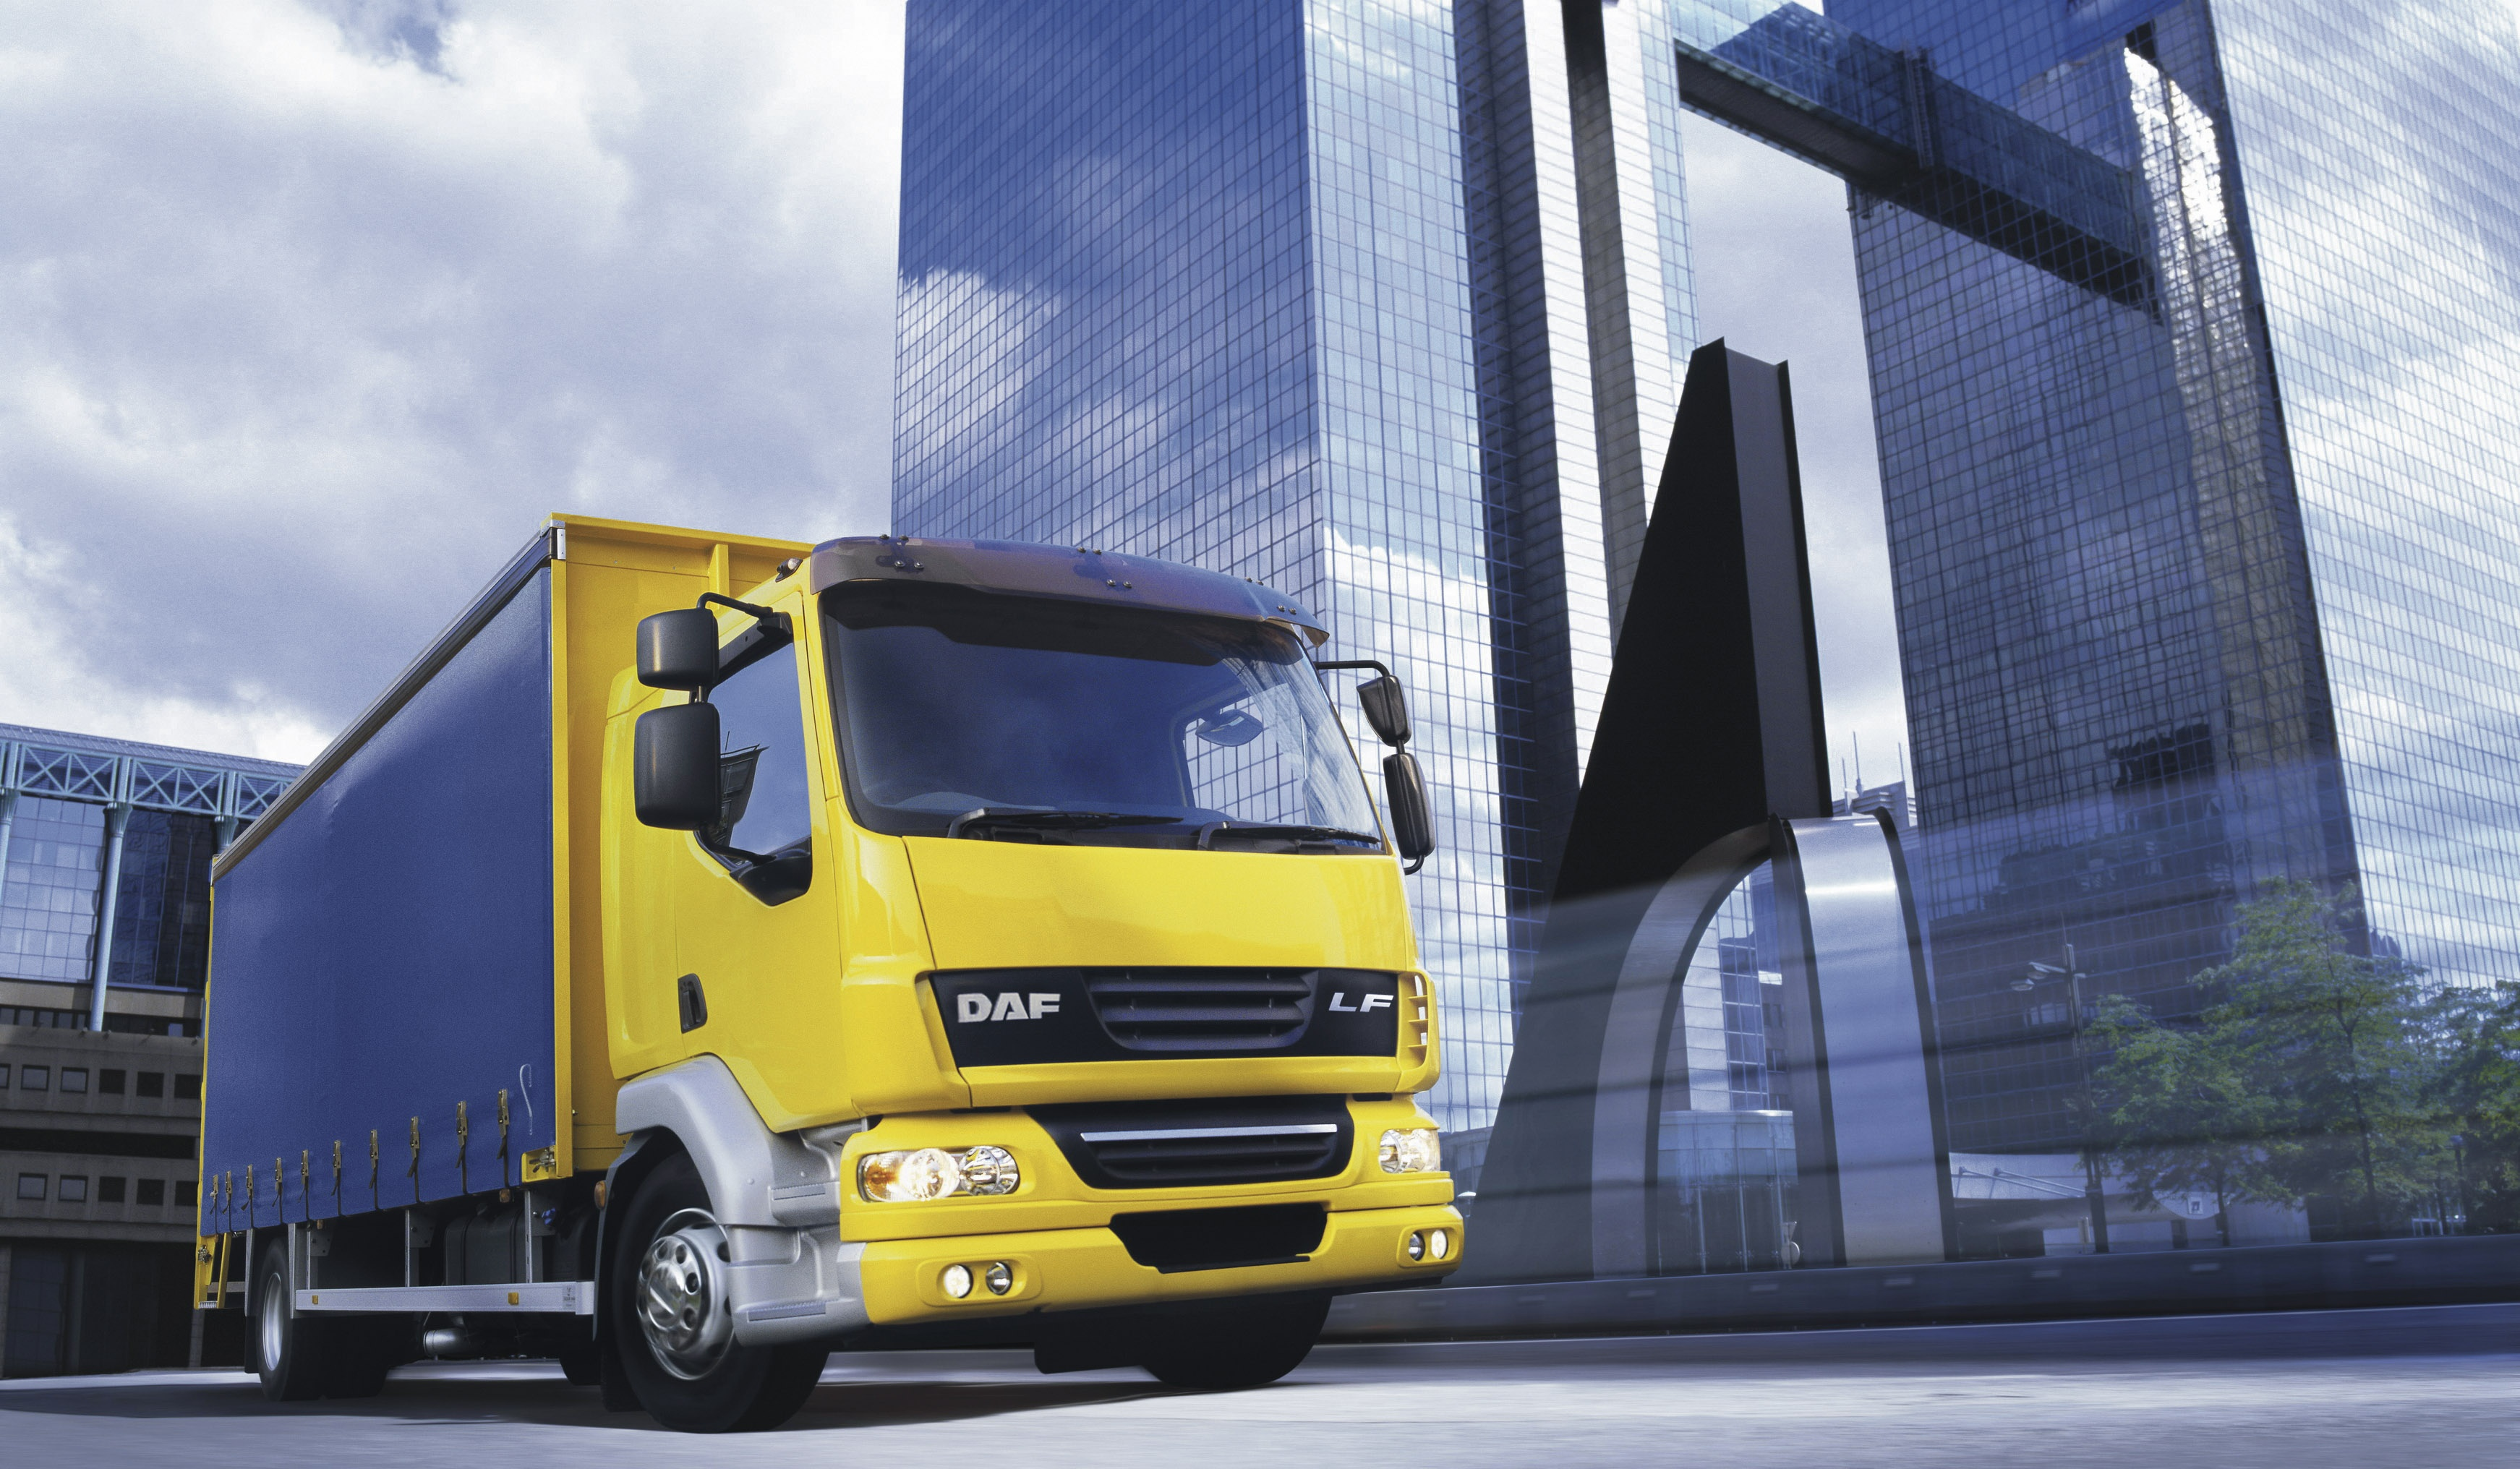 Daf introduces new model range improving performance productivity jpg publicscrutiny